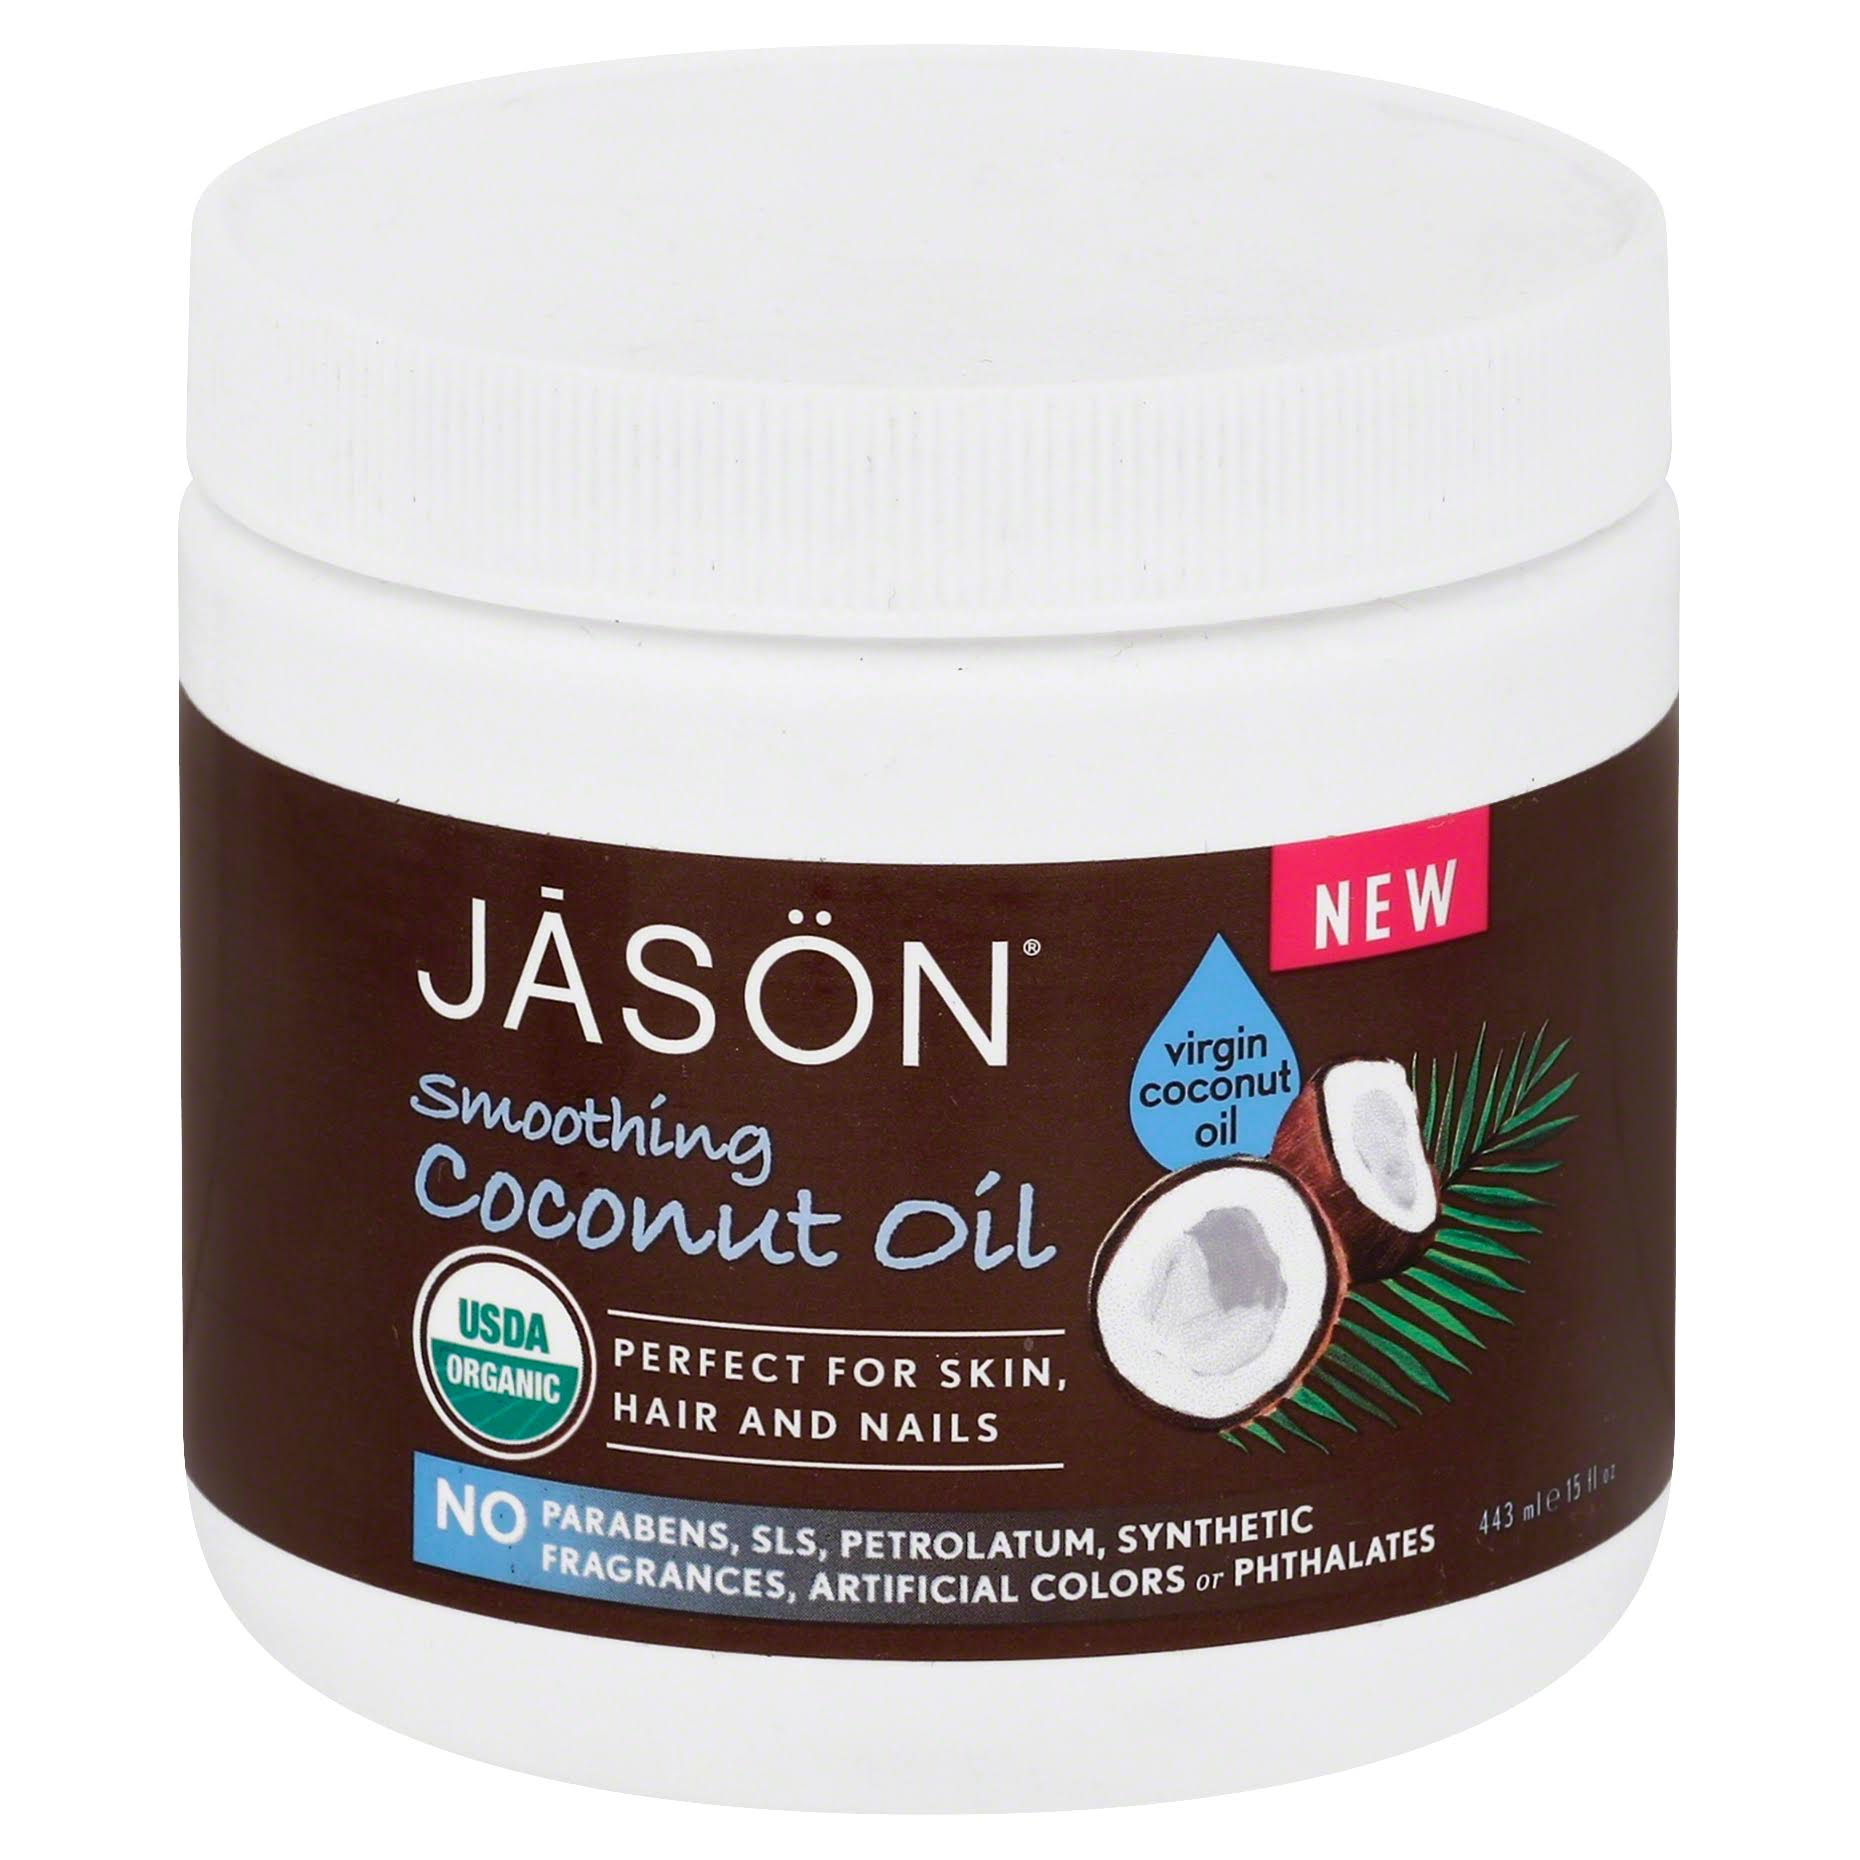 Jāsön Smoothing Virgin Coconut Oil - 15oz